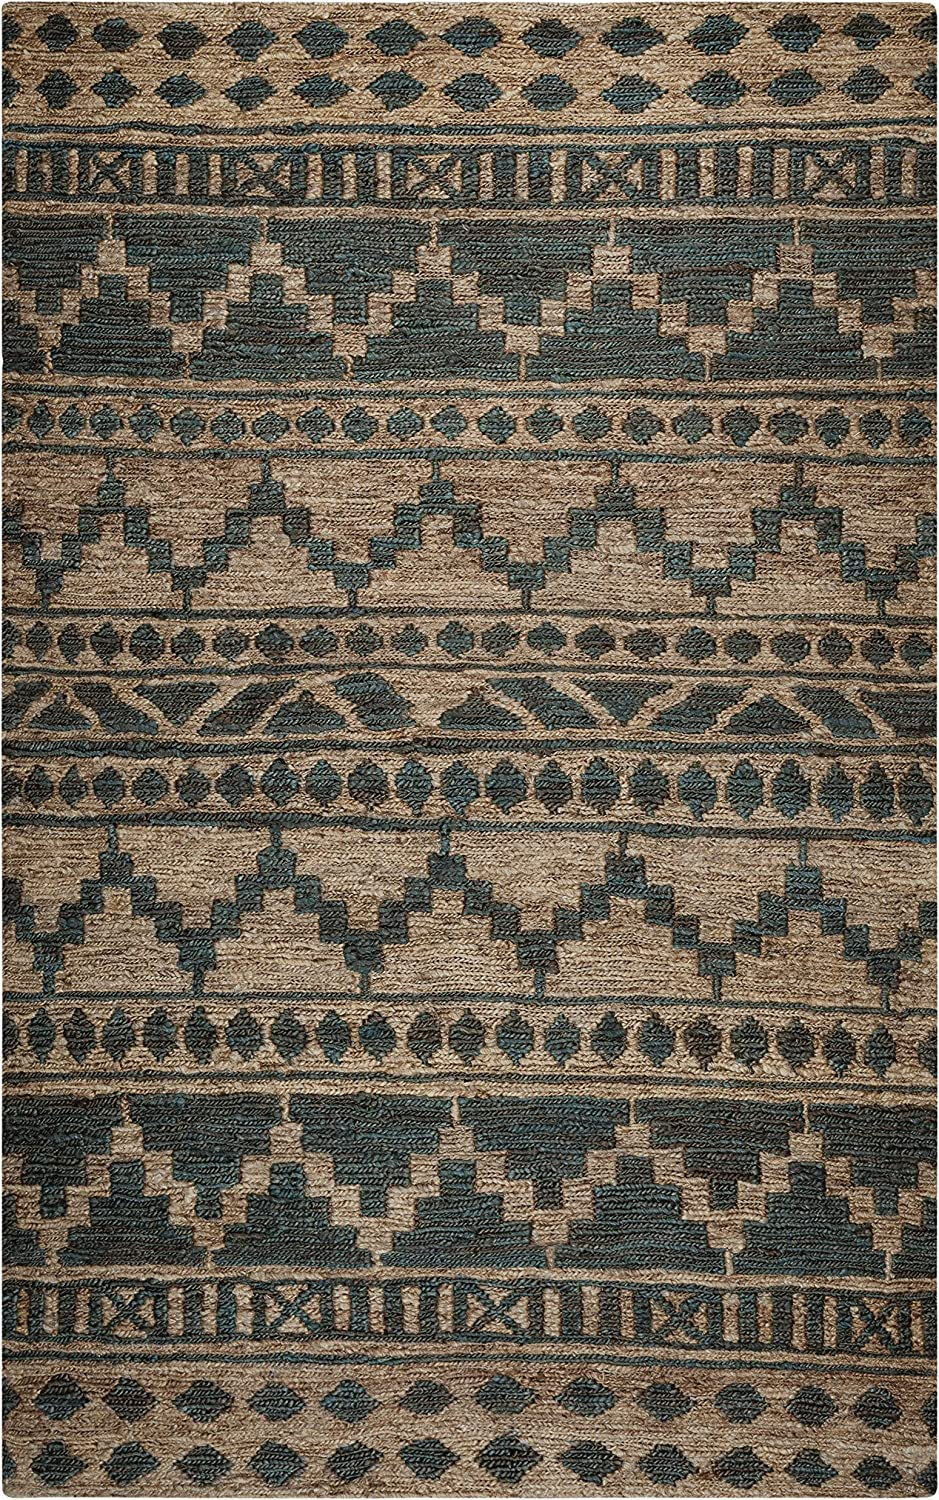 Rizzy Home Whittier Collection Jute Area Rug, 3' x 5', Sage/Natural Southwest/Tribal